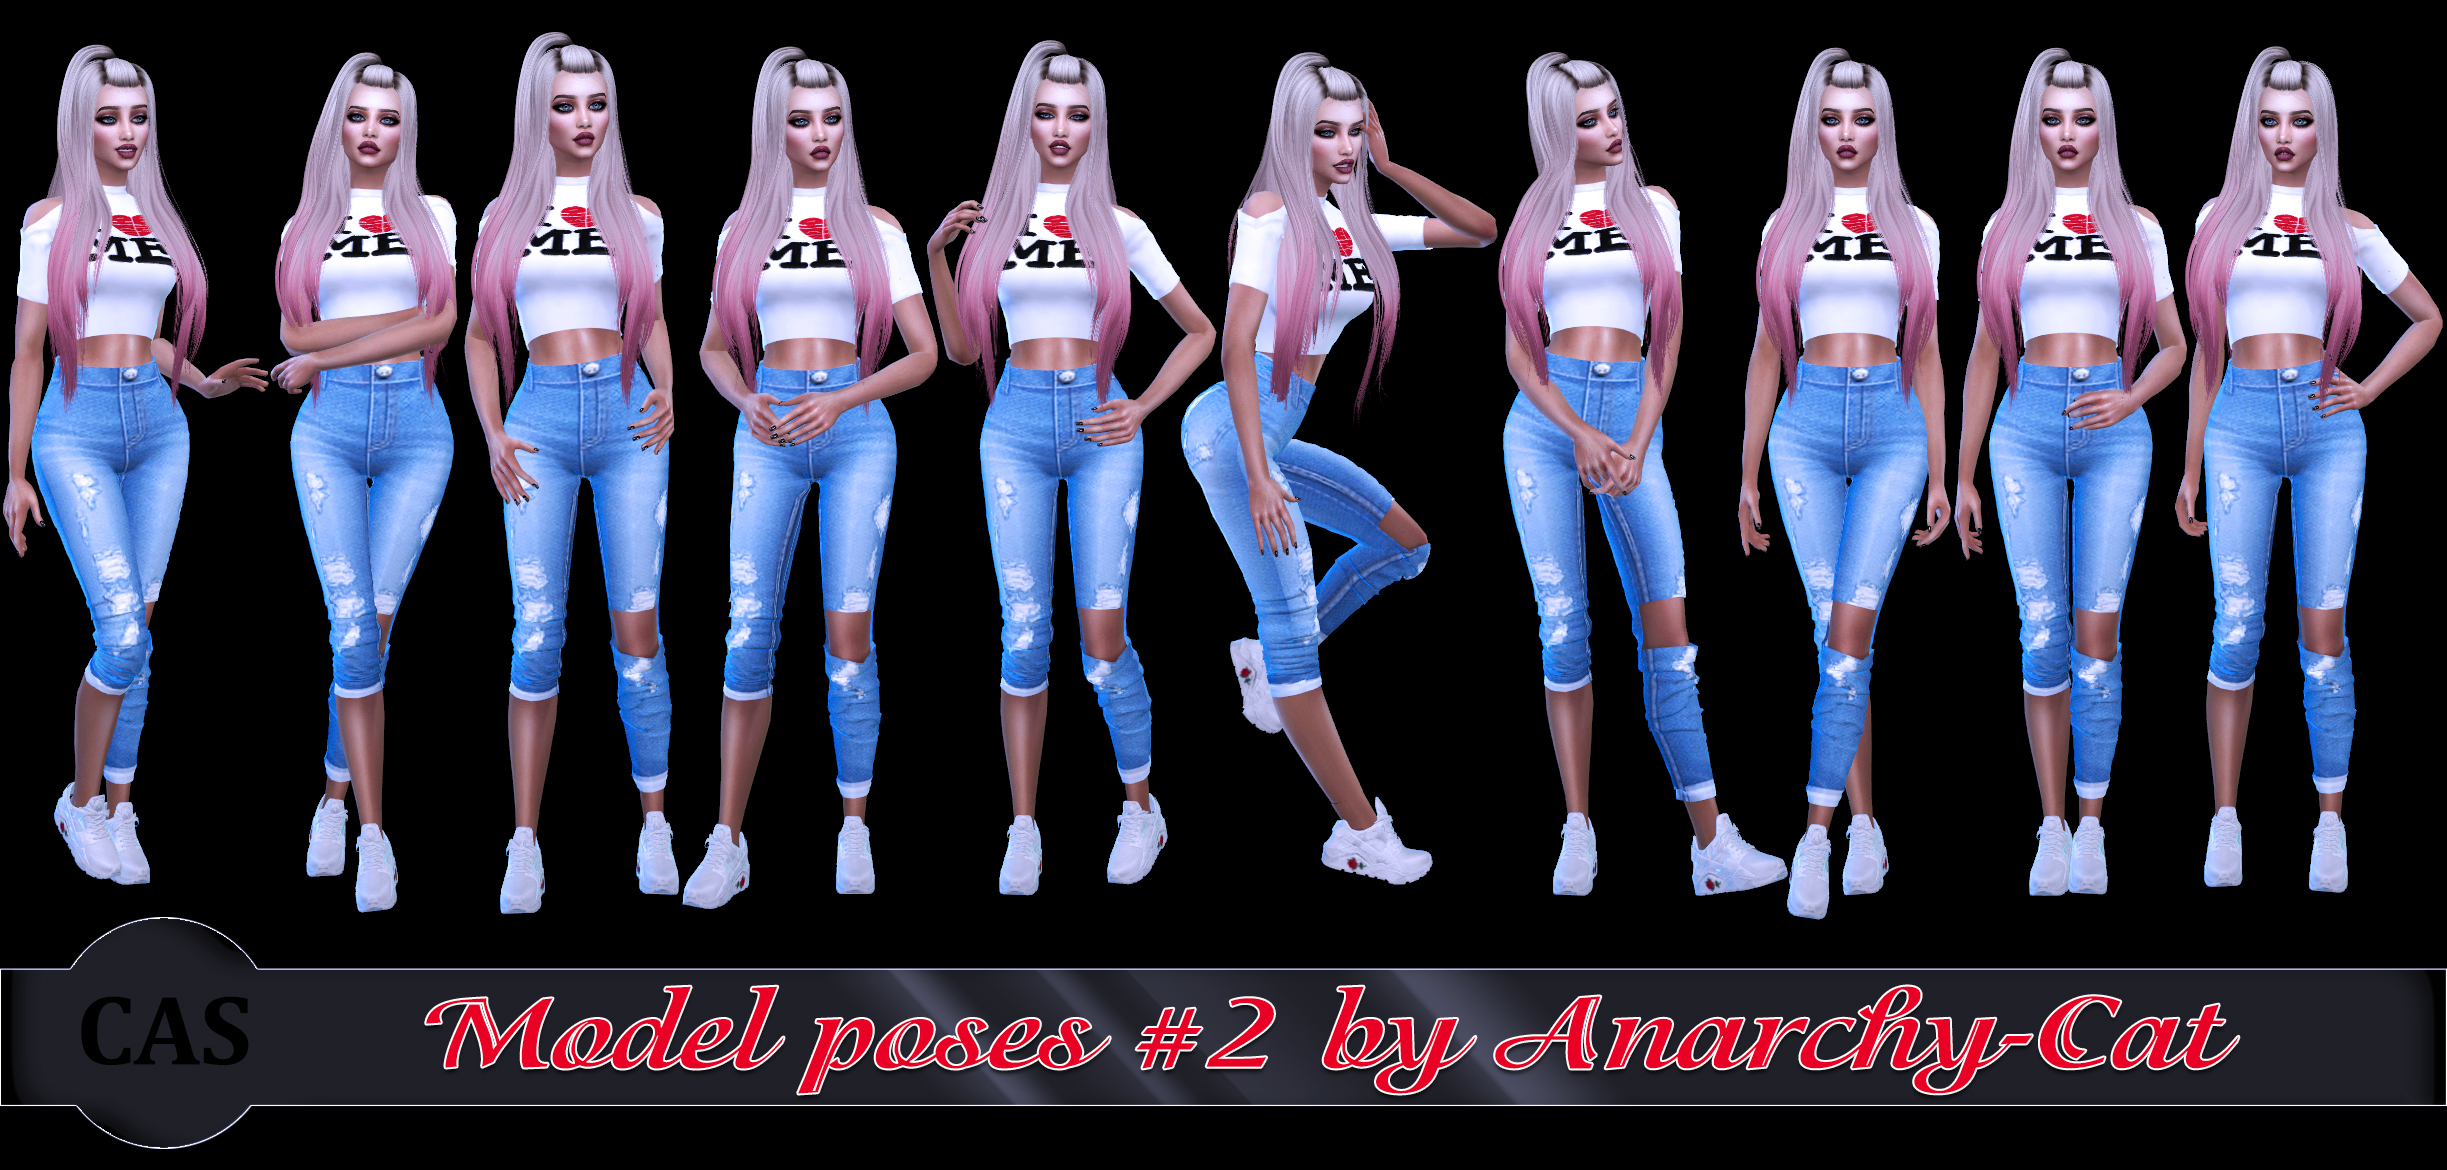 Model poses #2 by Anarchy-Cat